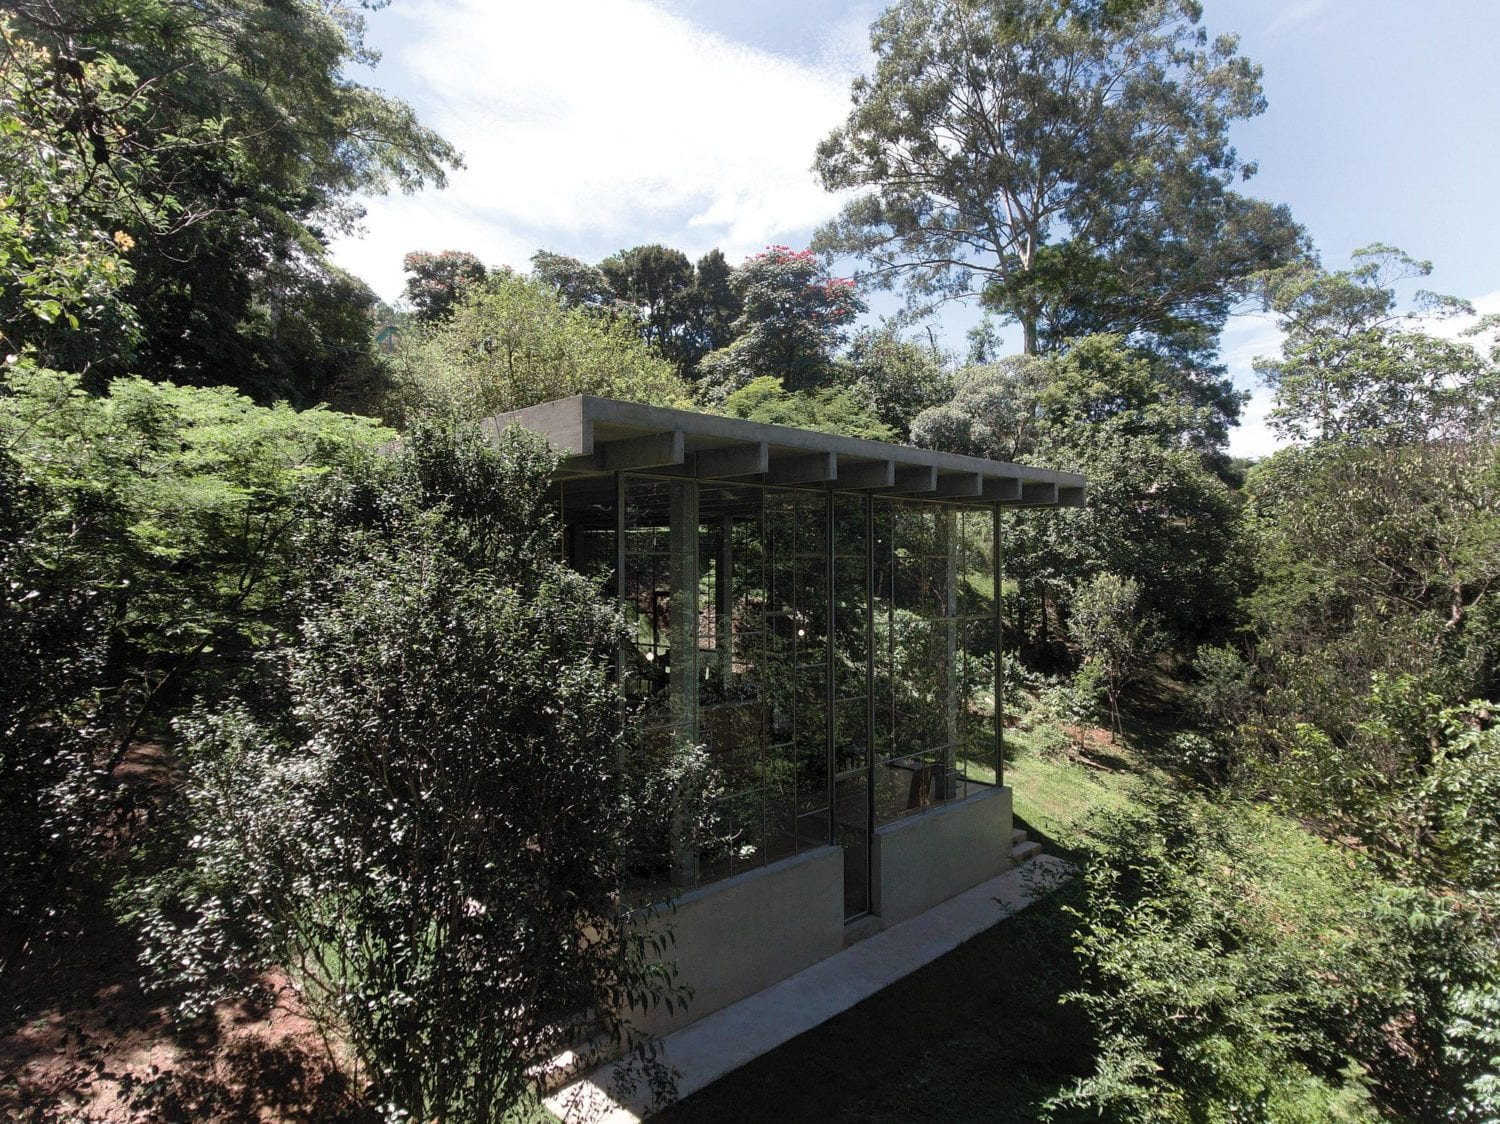 Library House Casa Biblioteca Brazil By Atelier Branco Yellowtrace 13